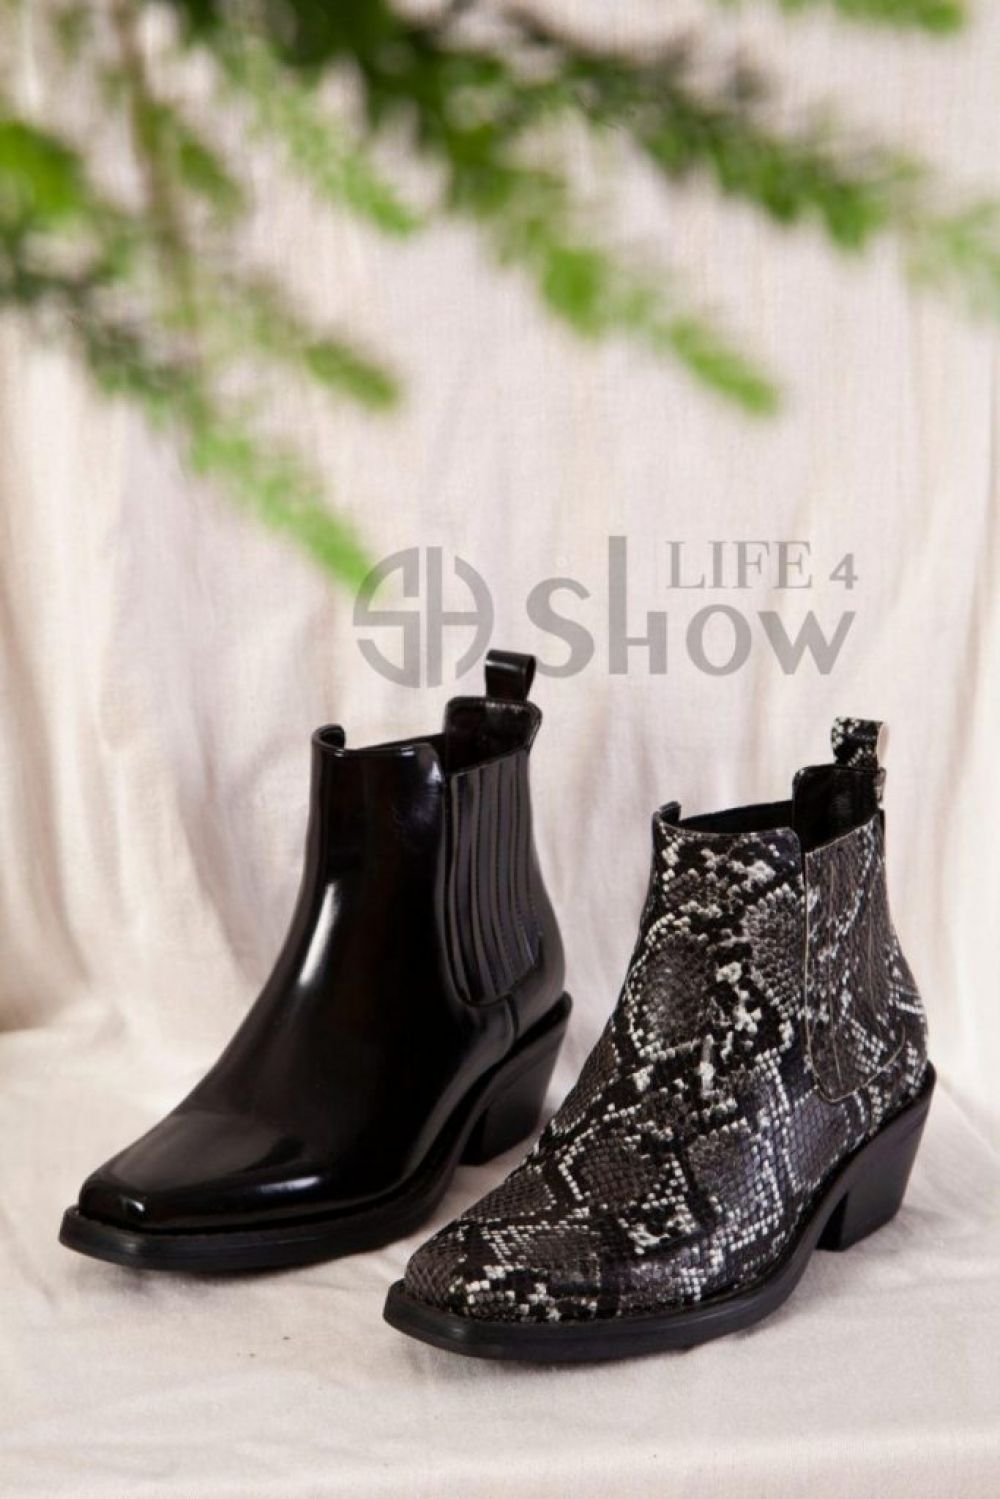 Black Leather Booties for Women Snakeskin Ankle Boots Best ShowLife4 NEW 2021 ✨ Wholesale from Turkey ✨ Best of Turkish Made products Click picture to view details of this product Follow Us and share this on your page #YeniExpo #madeinturkey 🇹🇷🇹🇷🇹🇷 #SupportTurkey